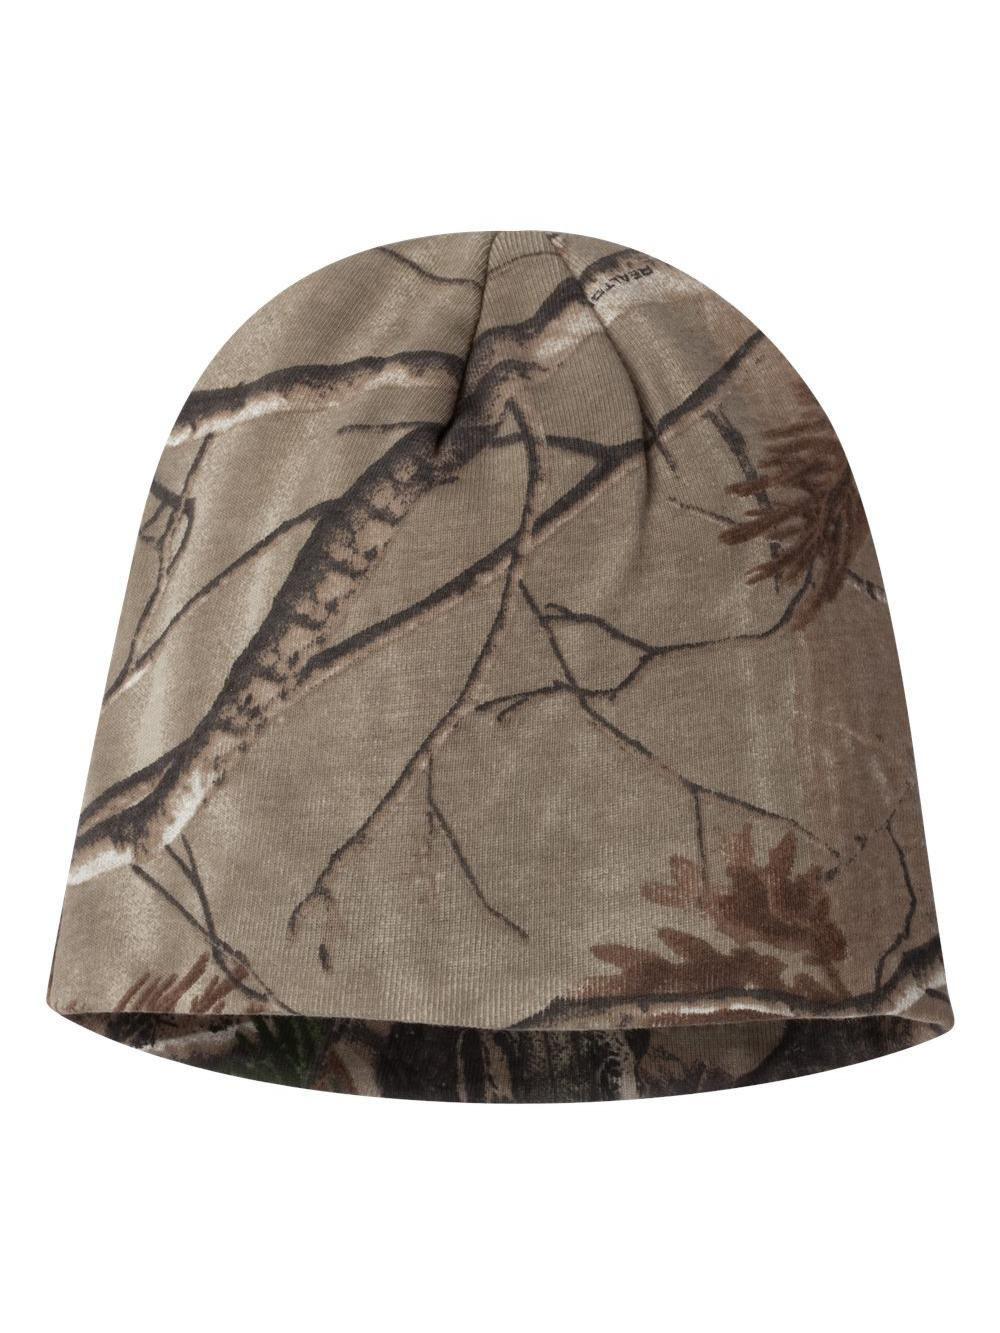 """MAX 5 Kati Camo Realtree Knit Cap Beanie Hat 8/"""" LCB08 lined winter cold weather"""